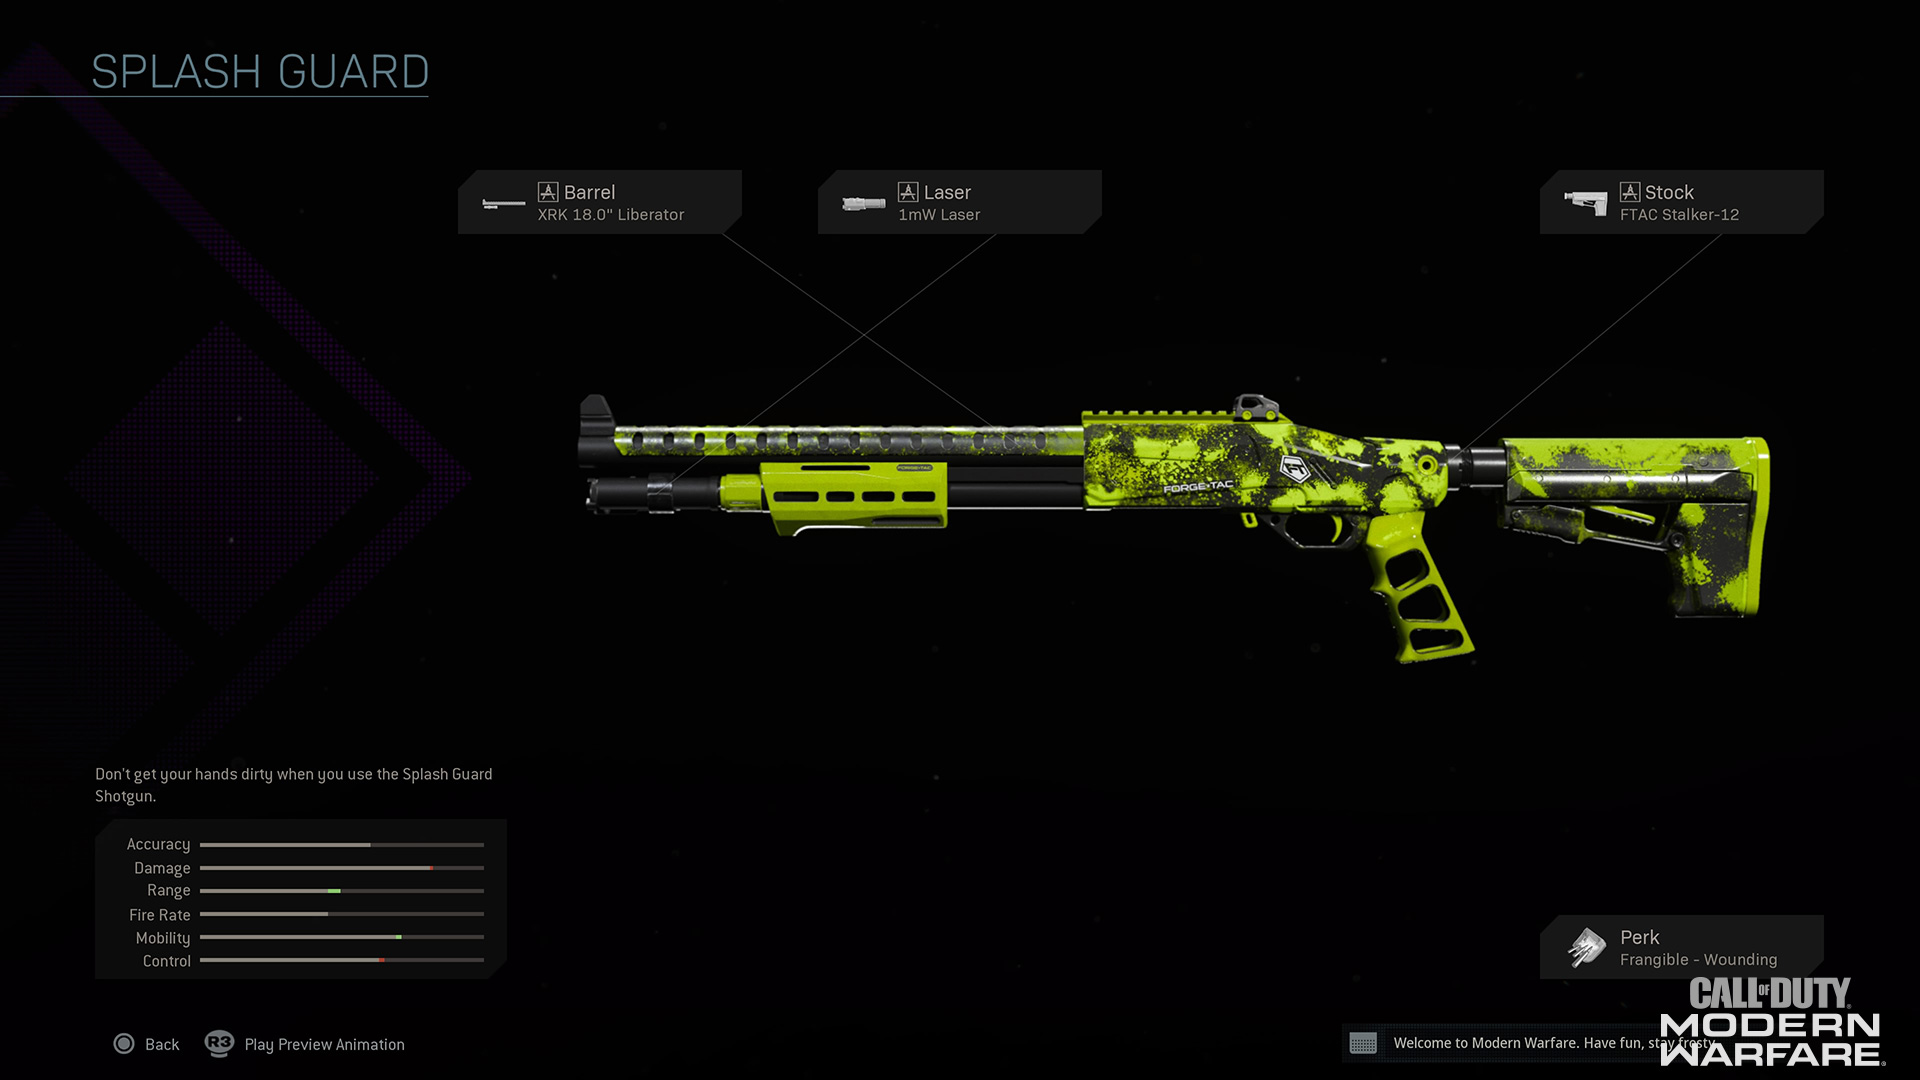 Modern Warfare, Including Warzone – A Store Bundle Refresh Featuring Mace! - Image 1